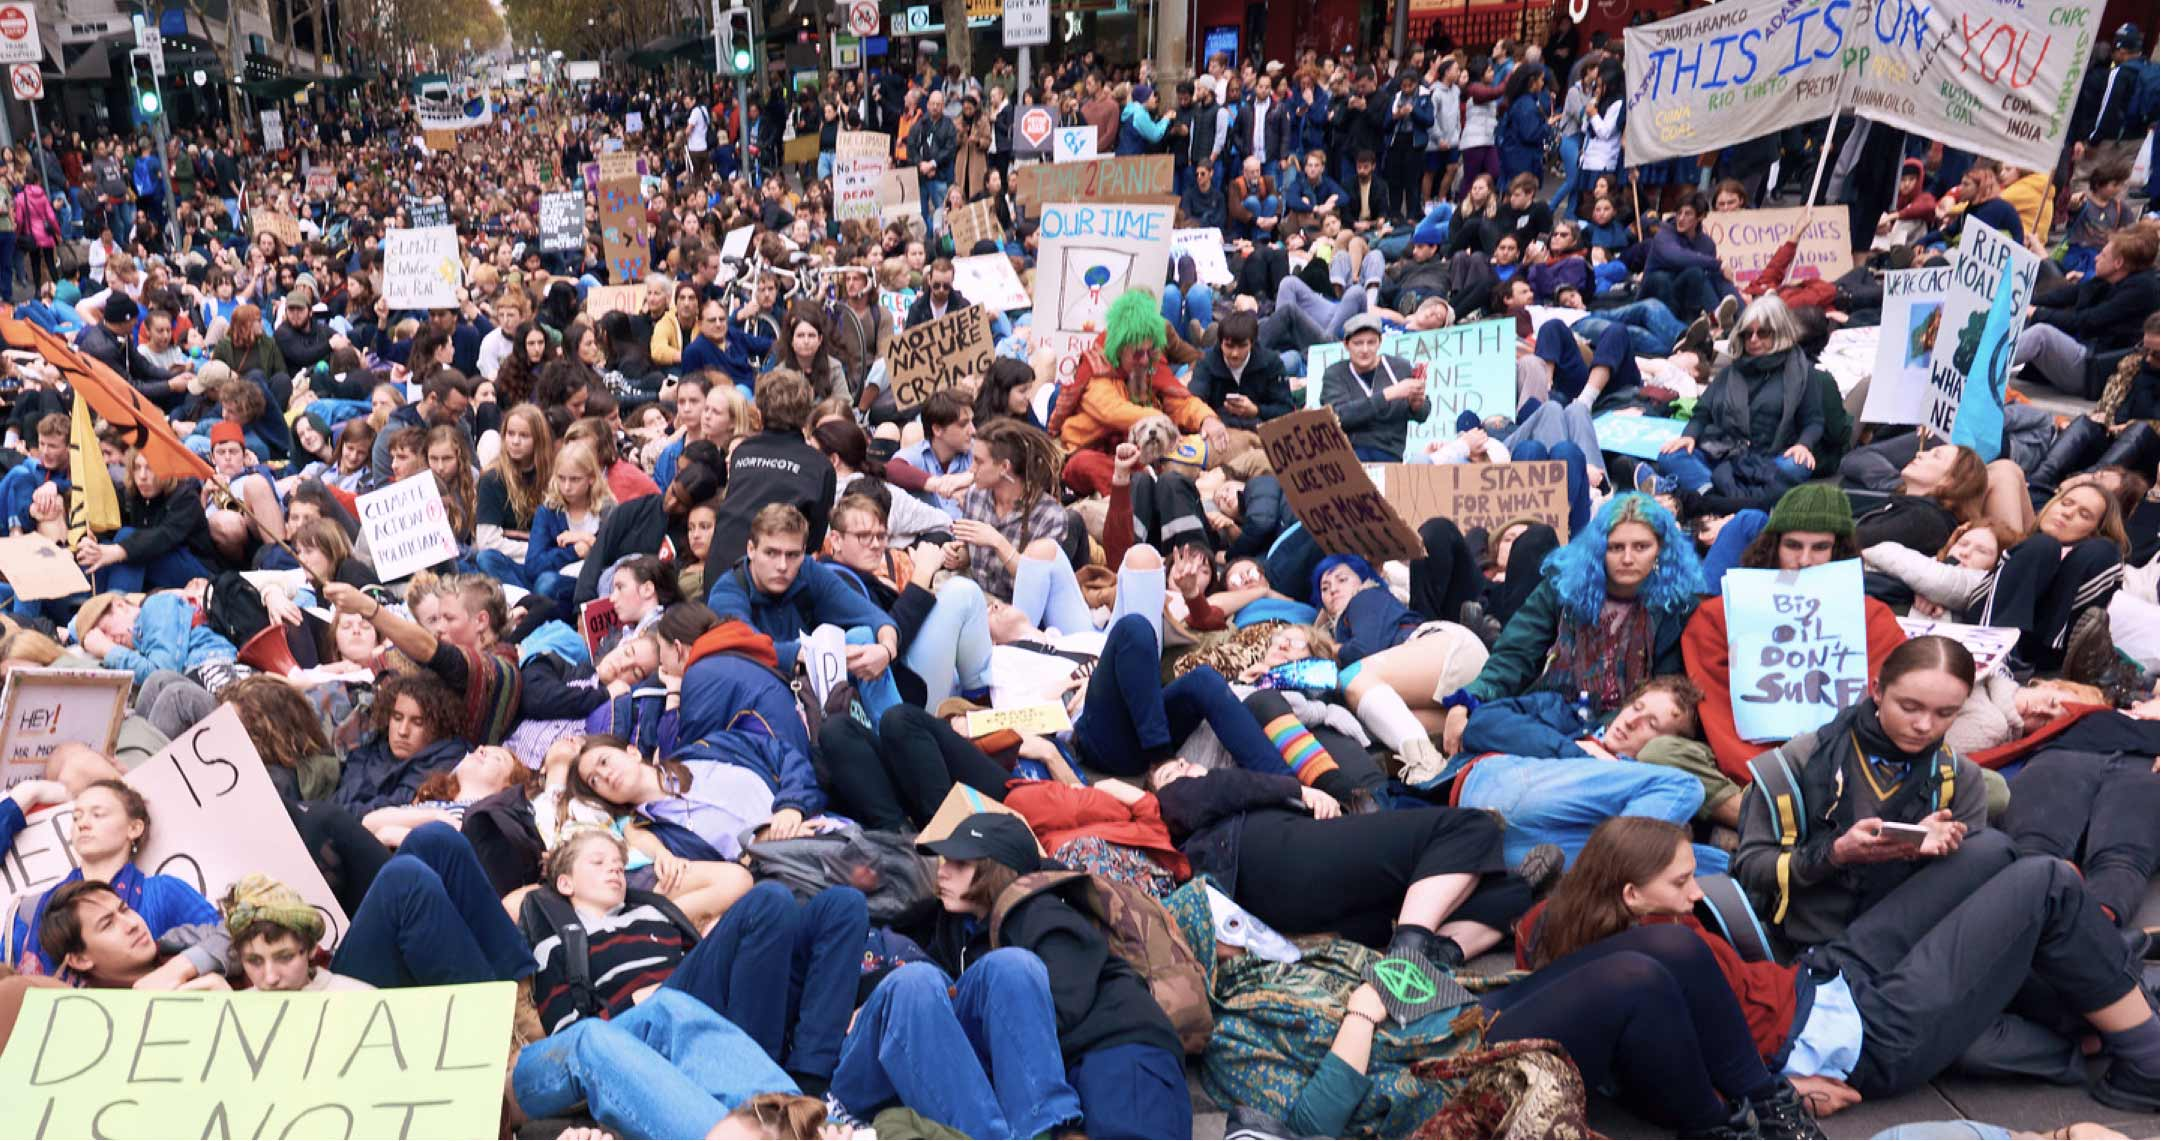 Thousands of people taking part in a 'Die-in' action in the streets of Melbourne